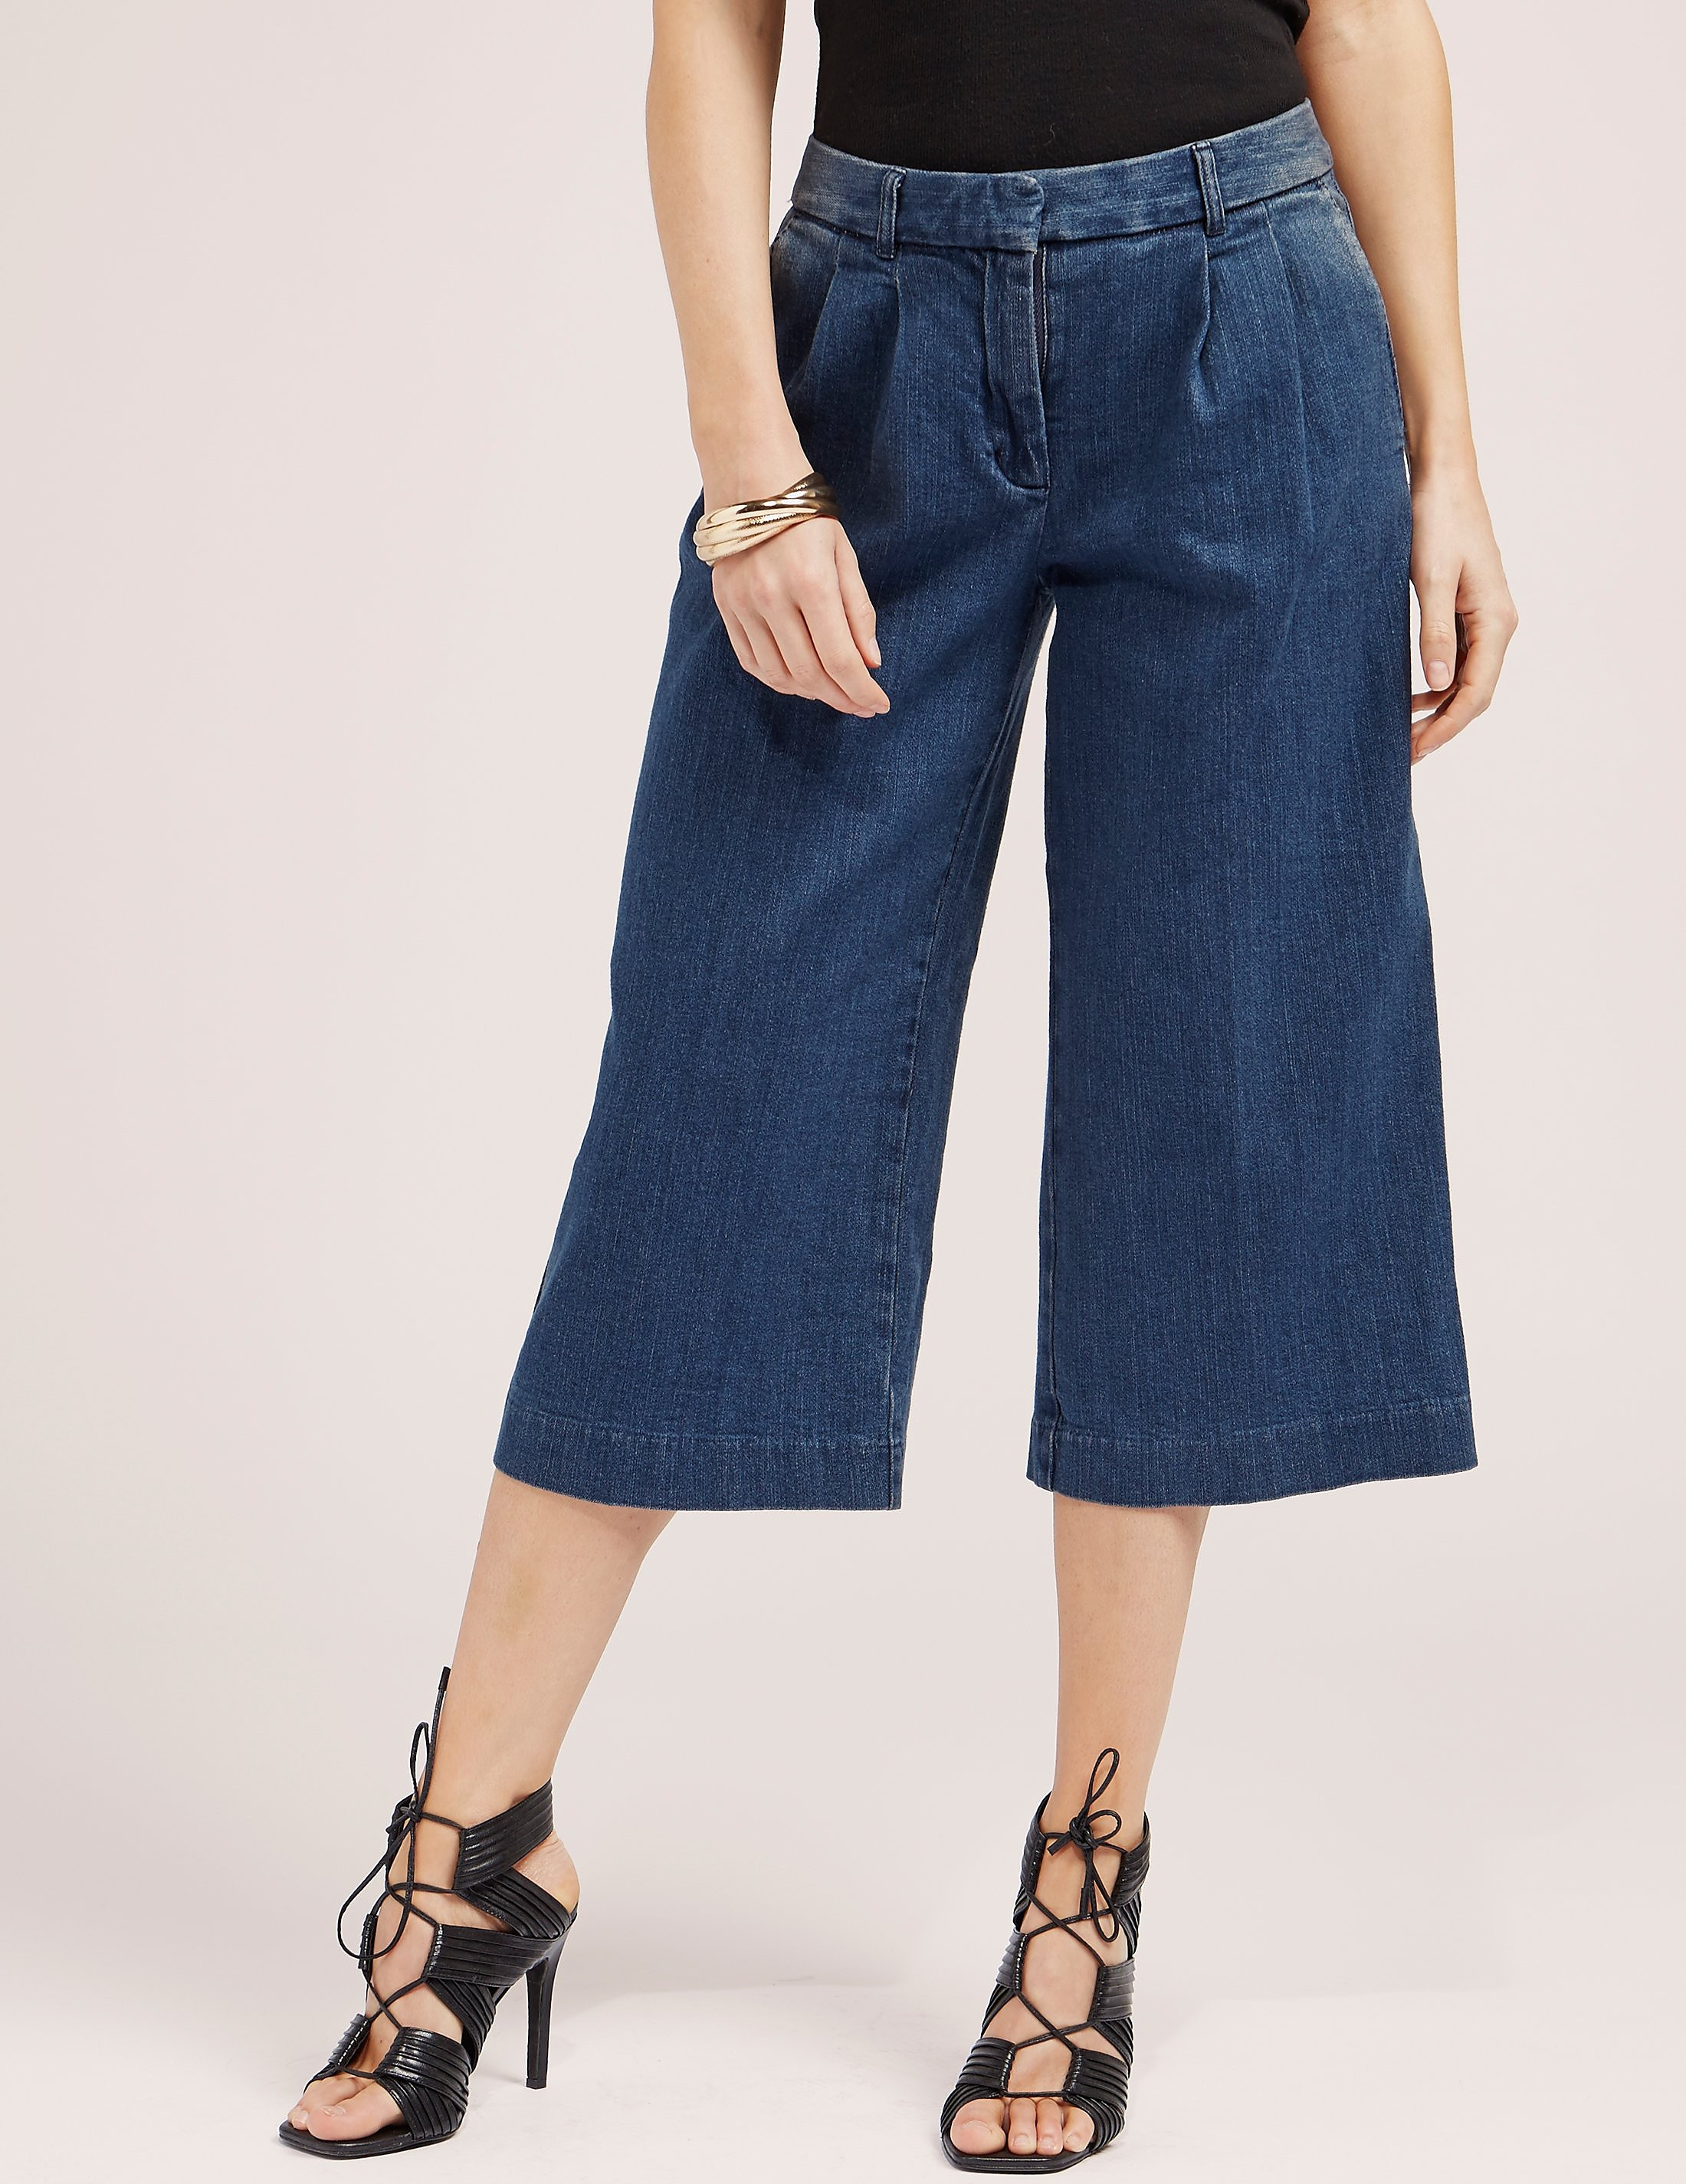 Michael Kors Huston Denim Culottes